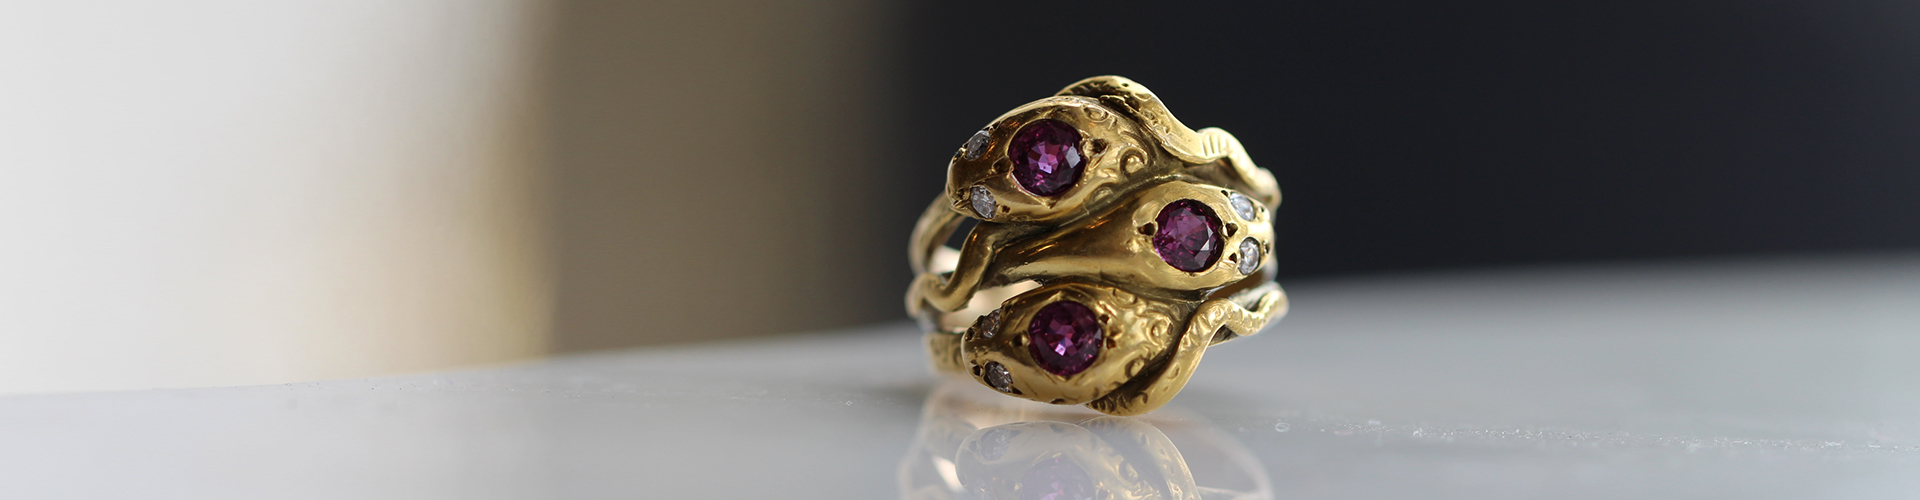 See our selection of Vintage Fine Jewelry at Voiage Los Angeles